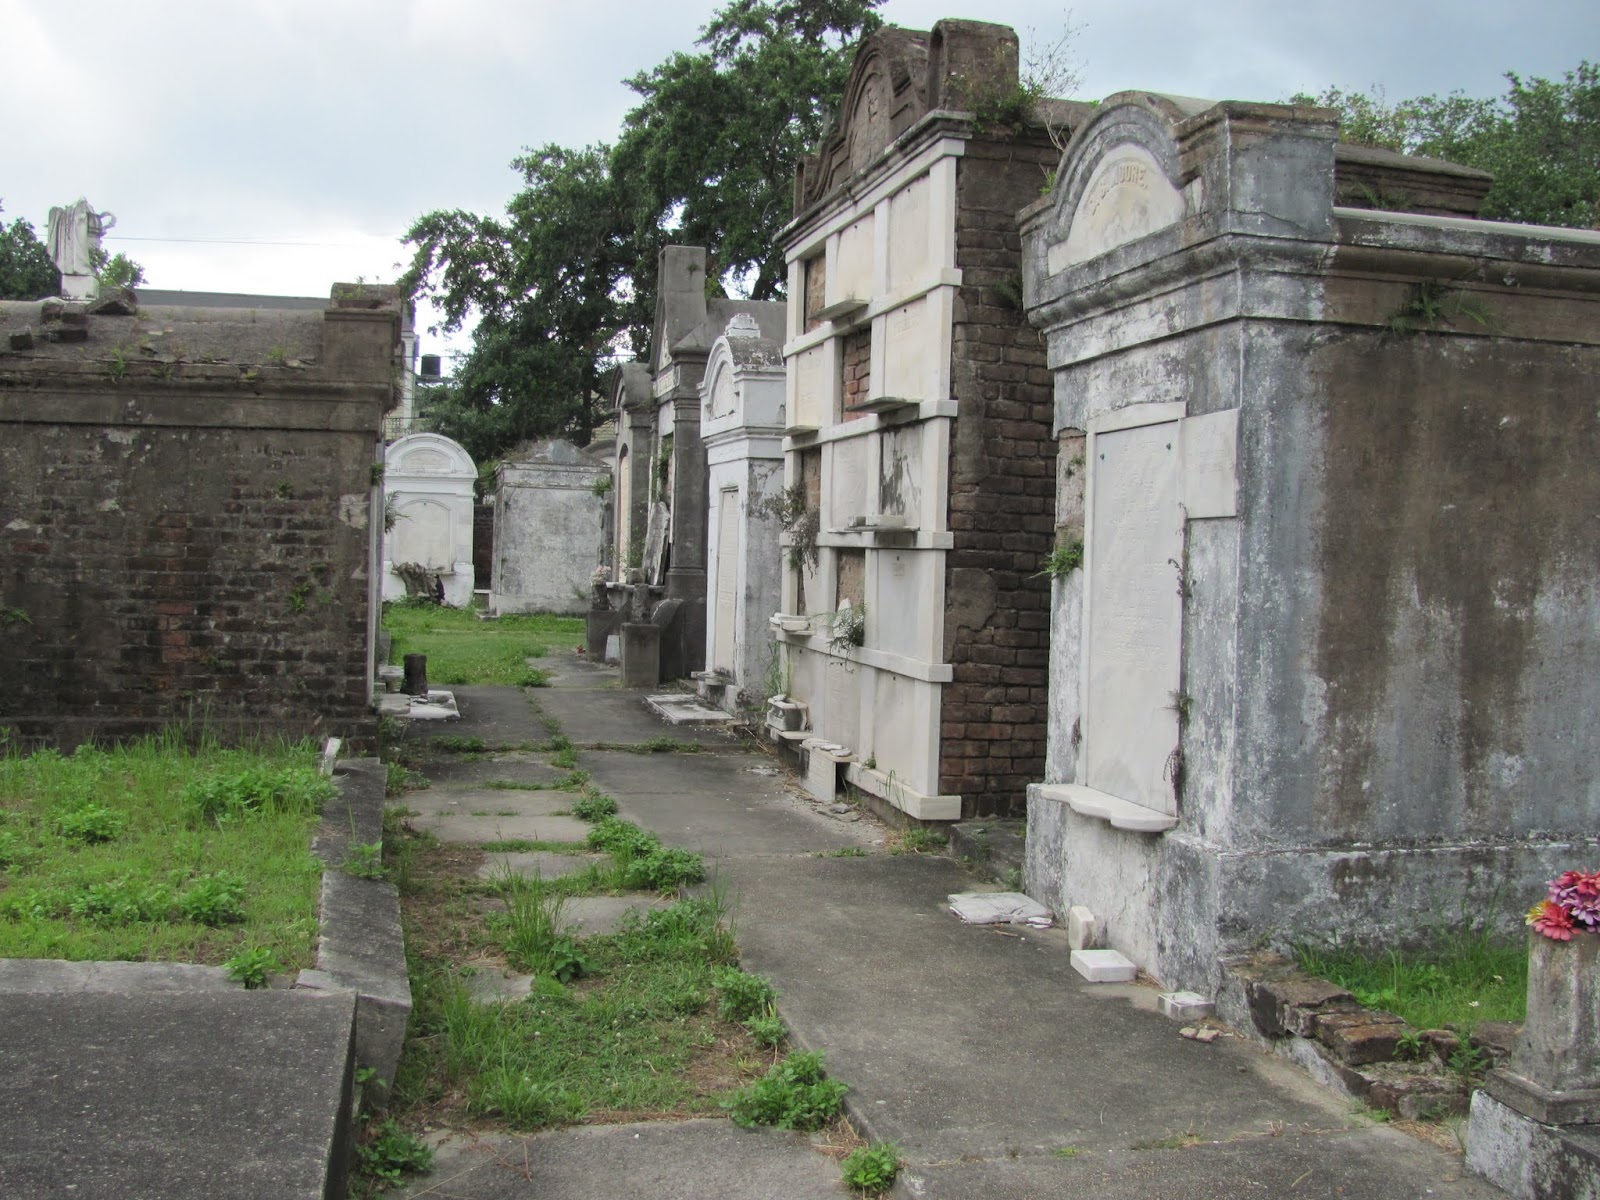 Many individuals are buried in one crypt wall at LaFeyette Cemetery in New Orleans, LA